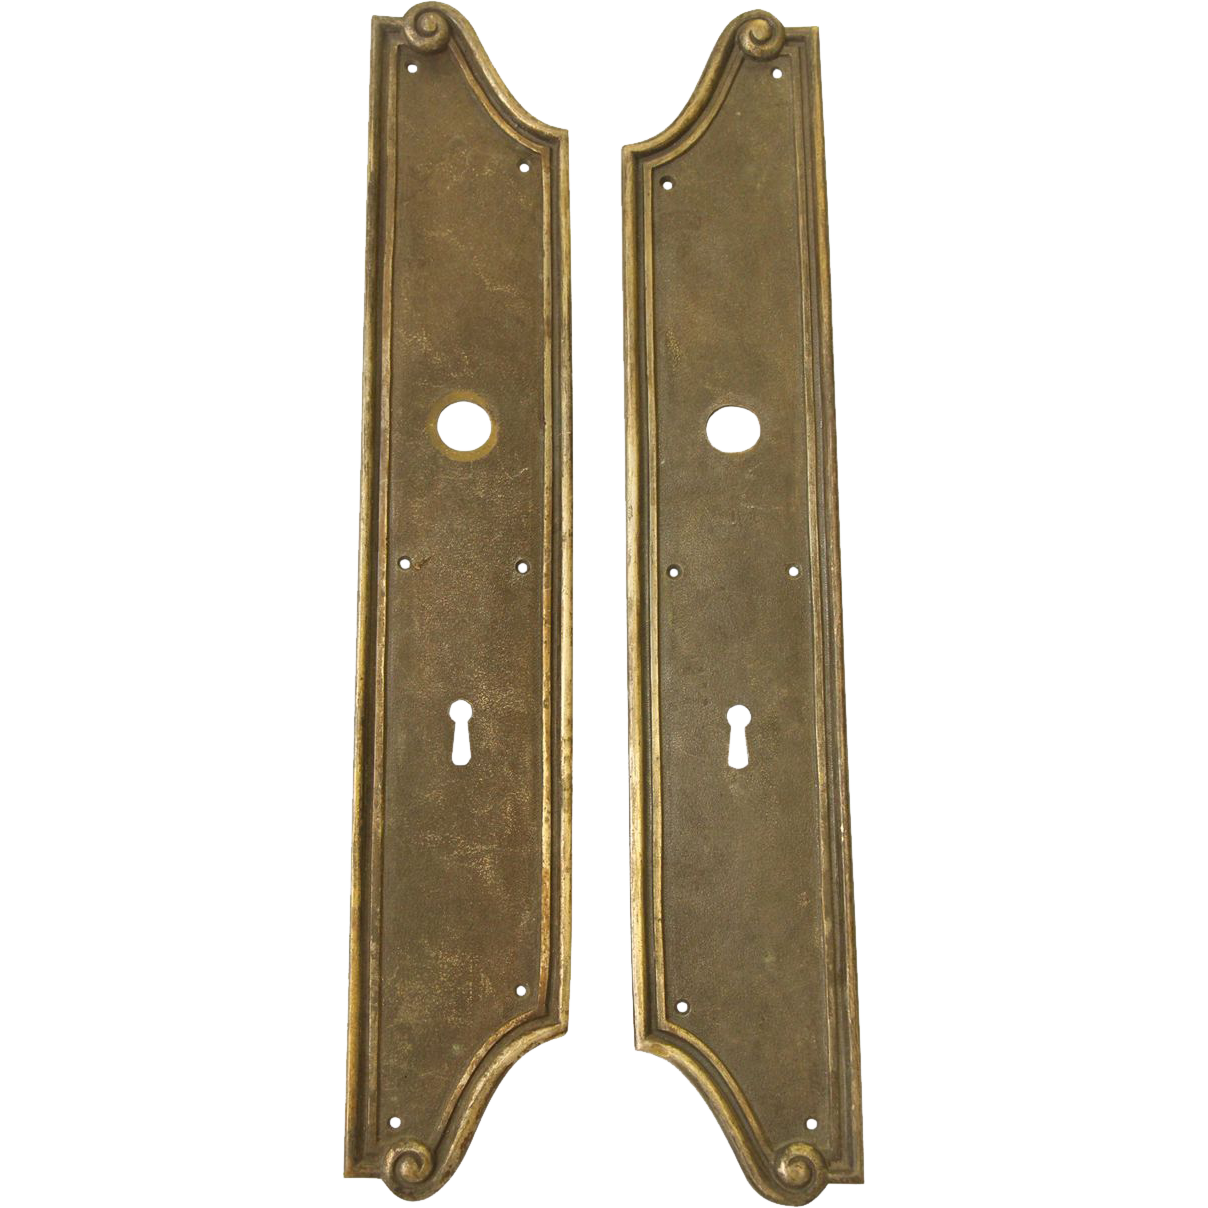 Oversized pair of vintage back plates